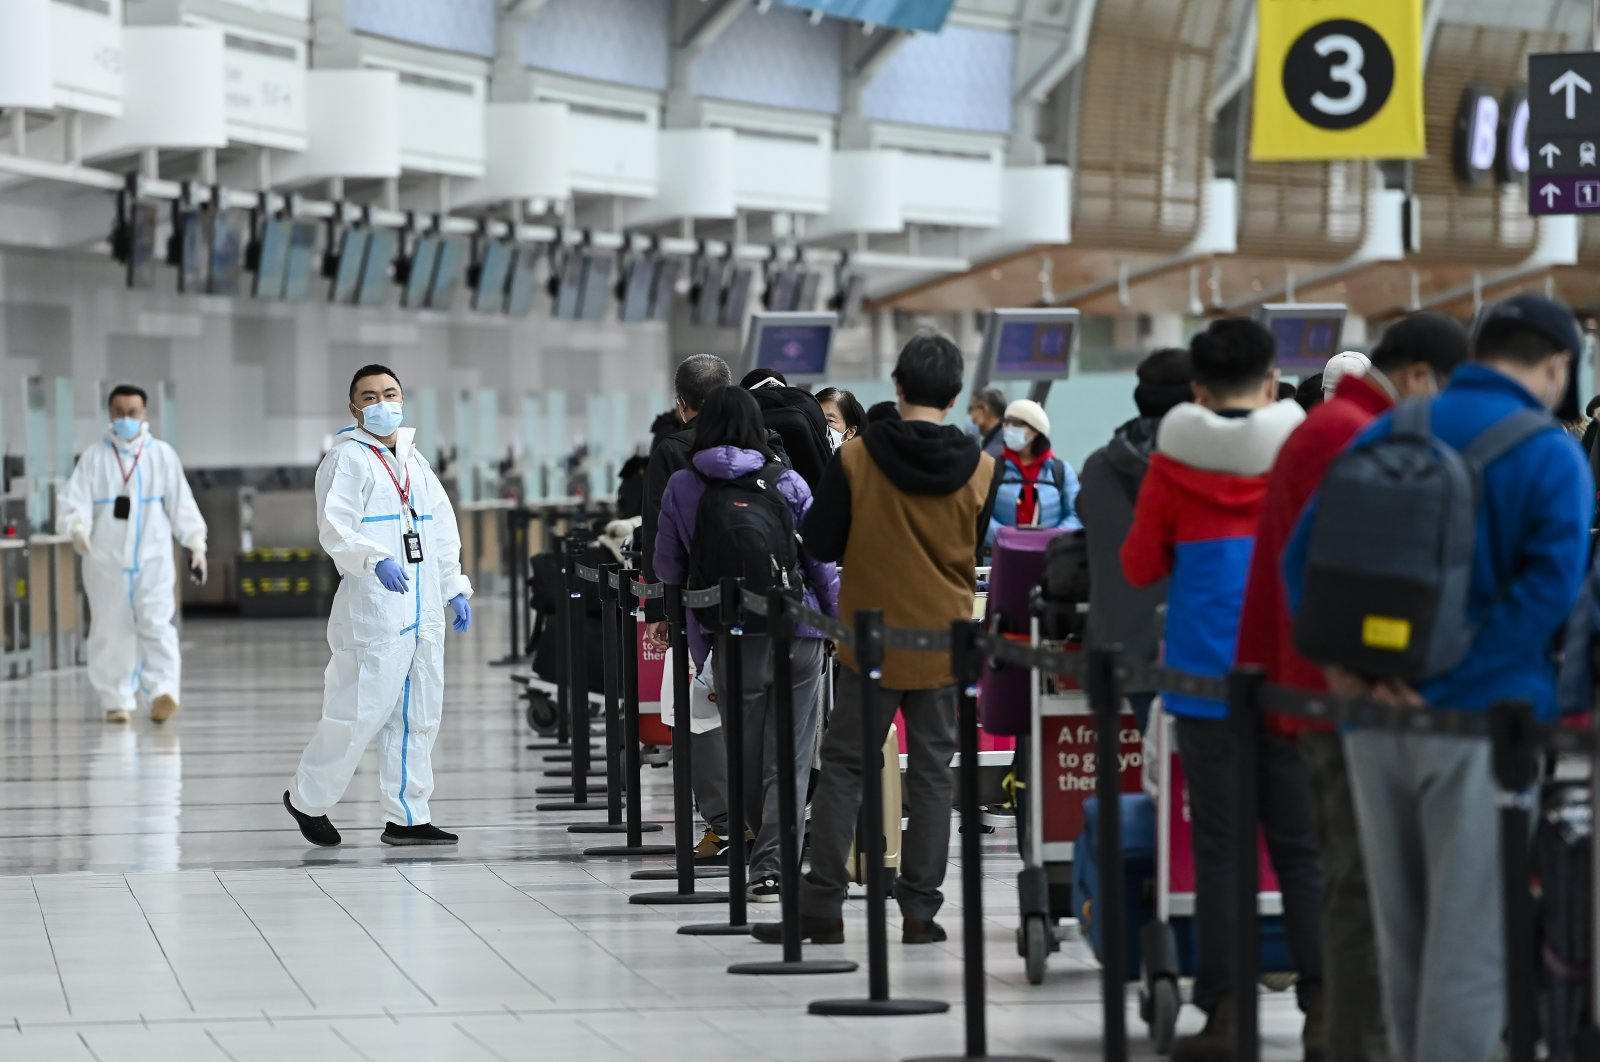 People line up and check-in for an international flight at Pearson International airport during the COVID-19 pandemic in Toronto, Canada, Oct. 14, 2020. (AP Photo)